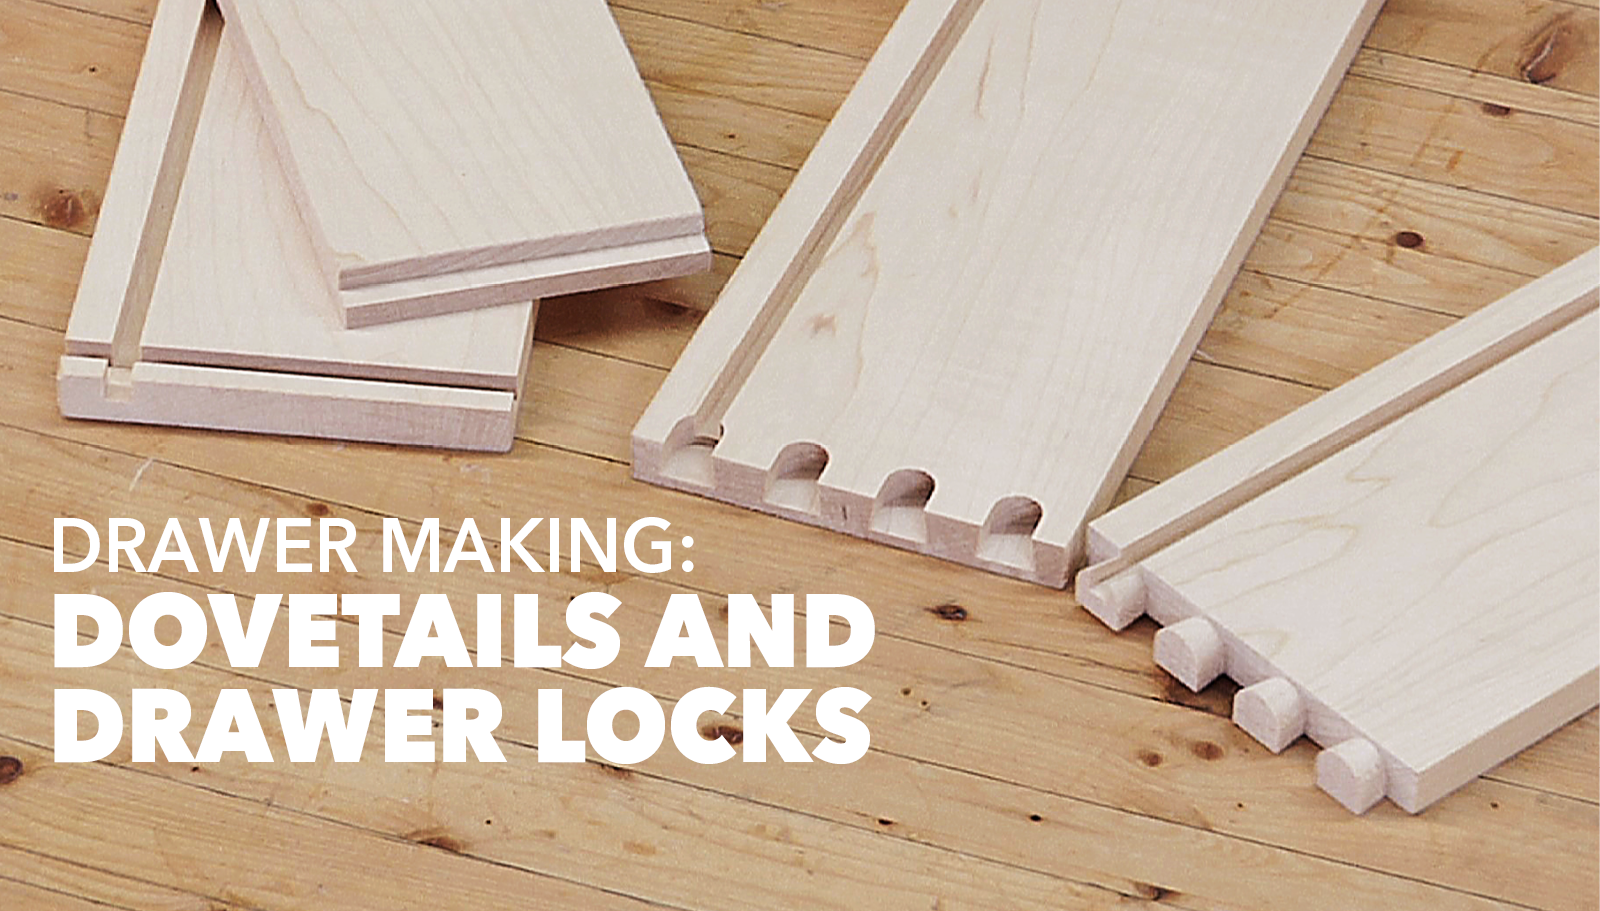 Drawer Making: Dovetails and Drawer Locks | WoodWorkers Guild of America